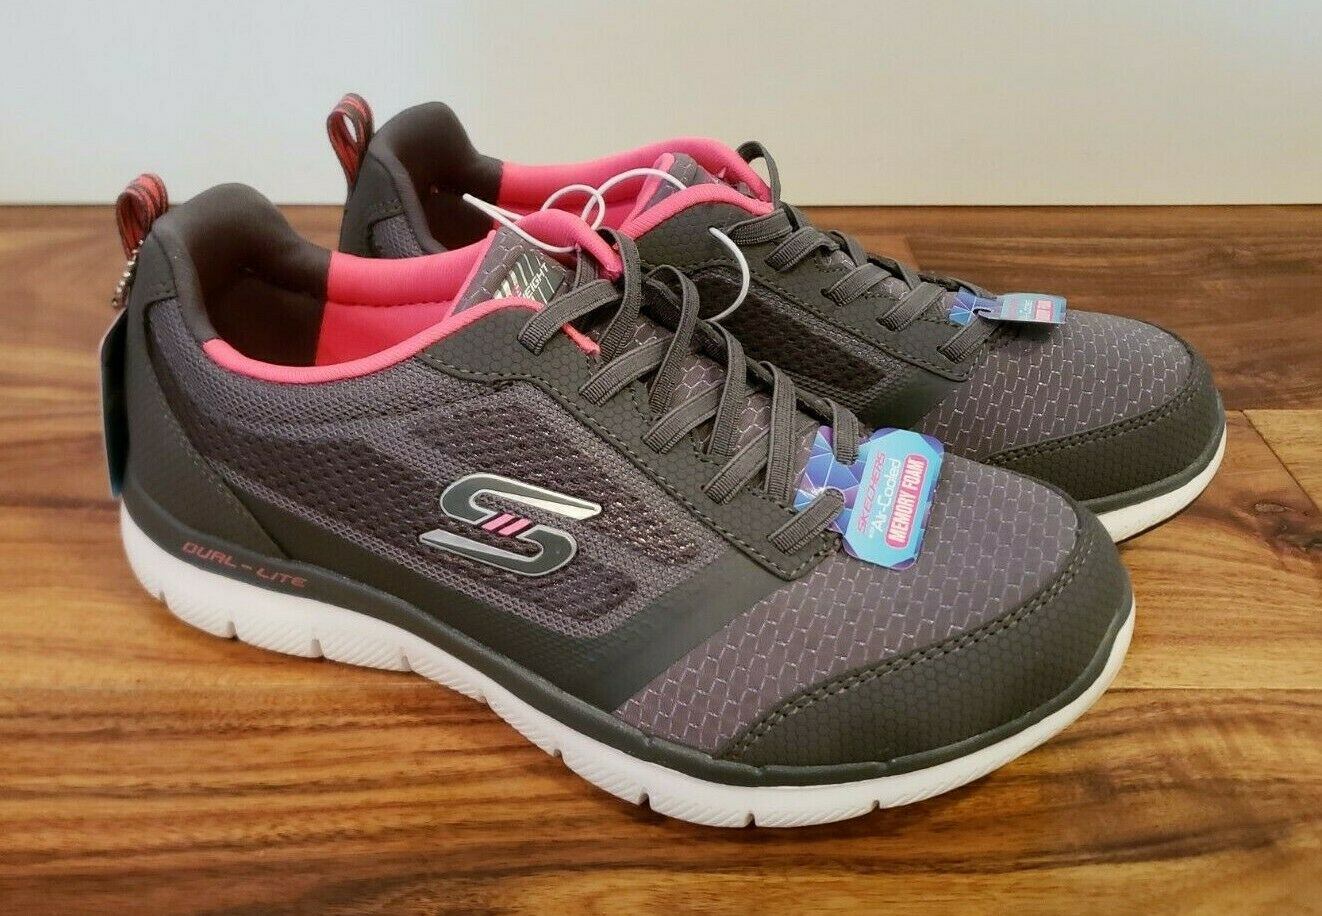 NEW Women's SKECHERS Gray Pink Bungee Slip On Flex Appeal Athletic Shoes 10 US